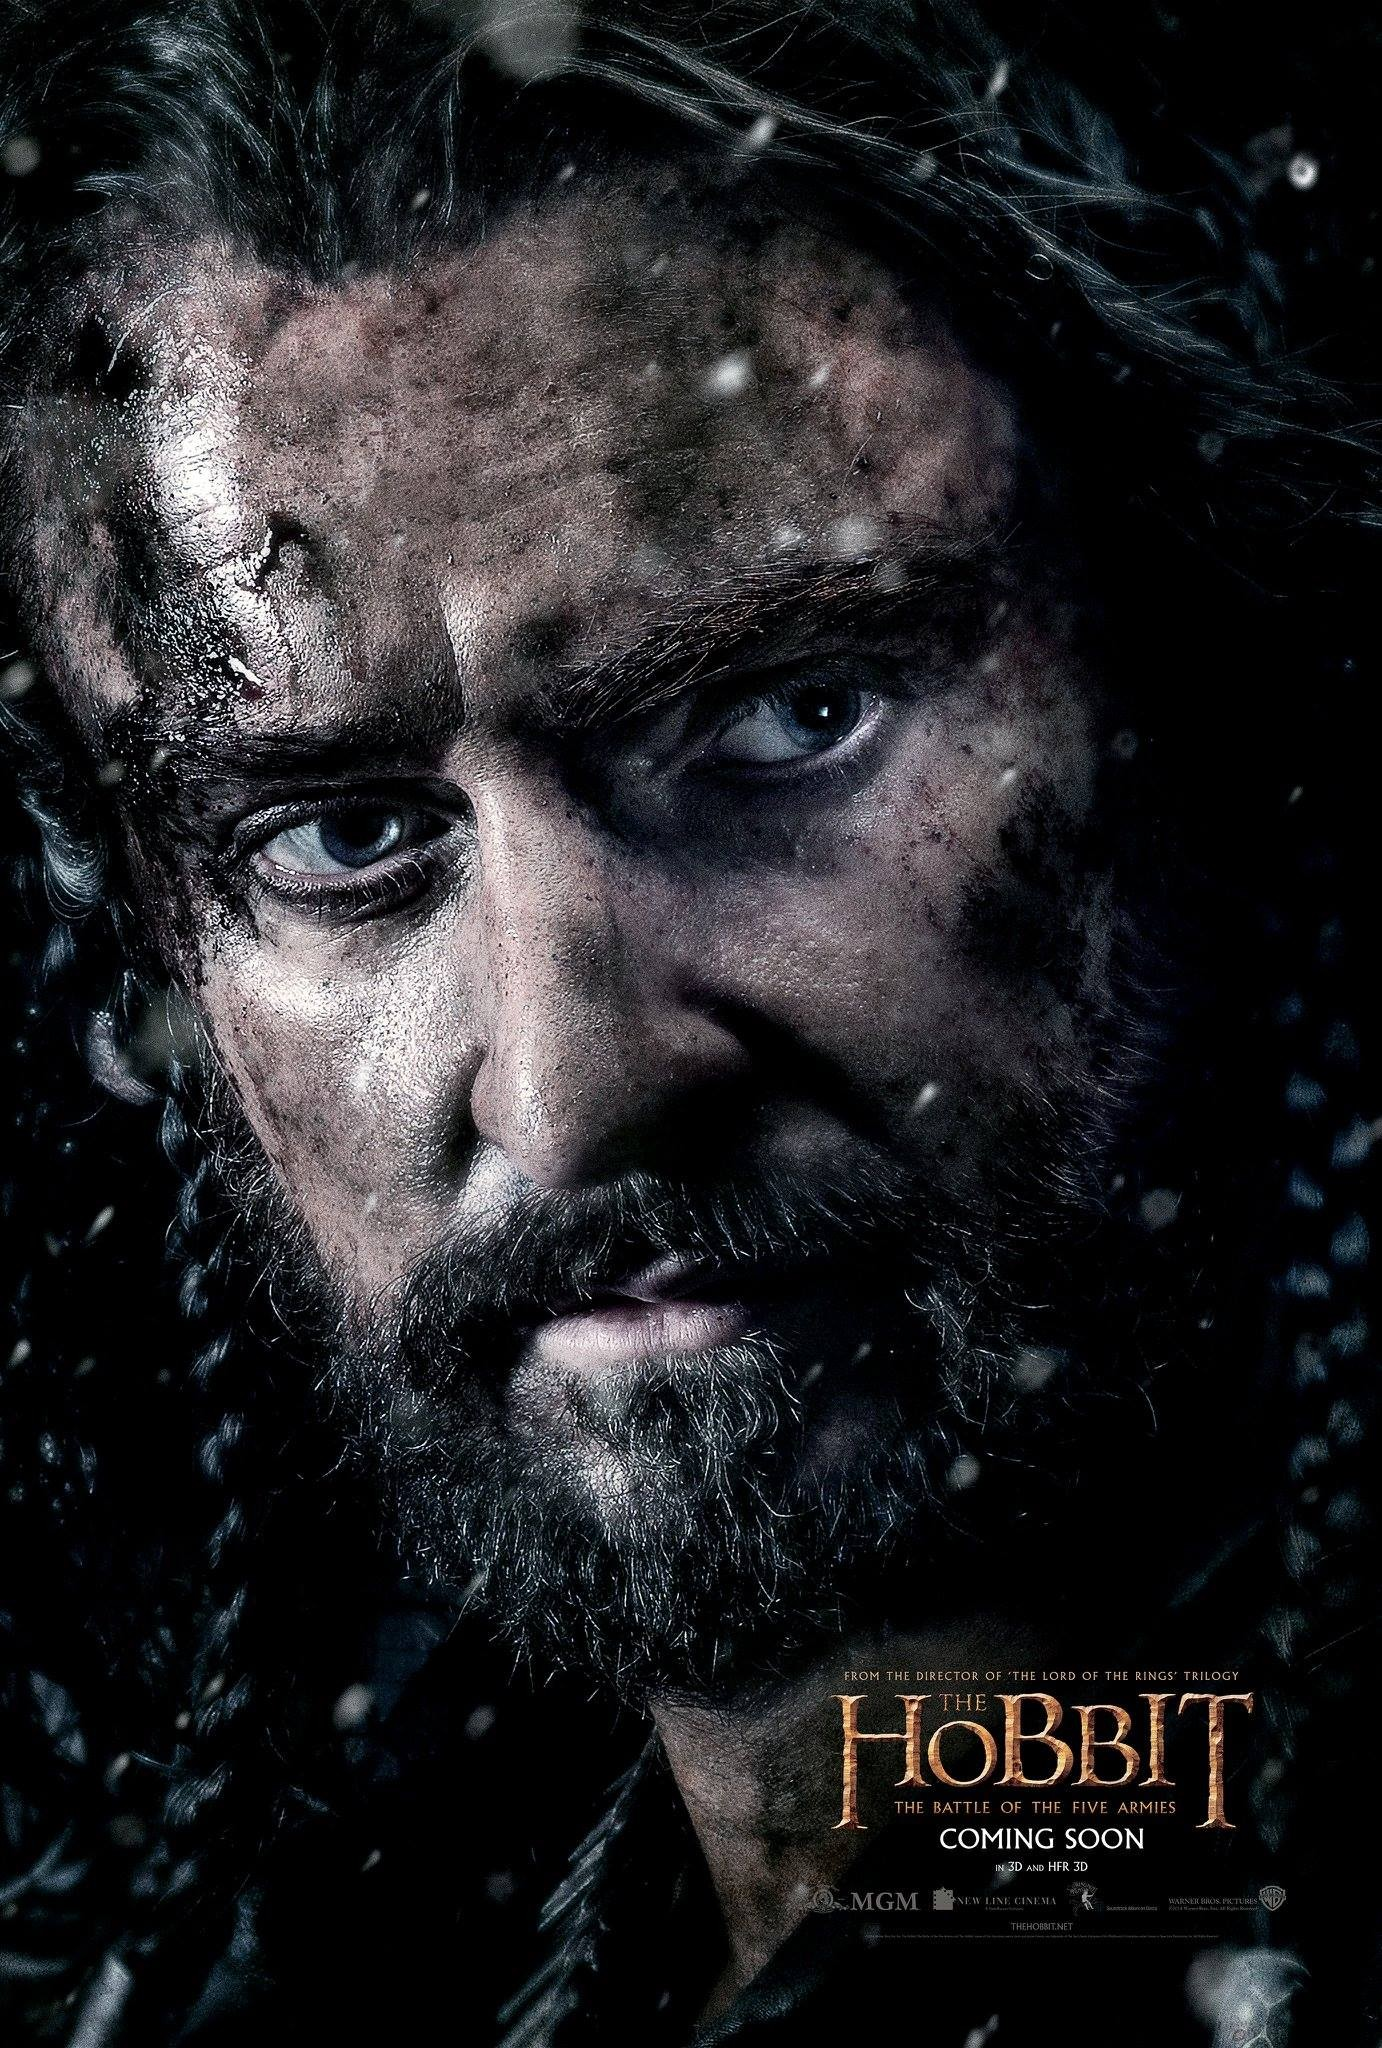 The Hobbit The Battle of the Five Armies-Official Poster CHAR-14OUTUBRO2014-03